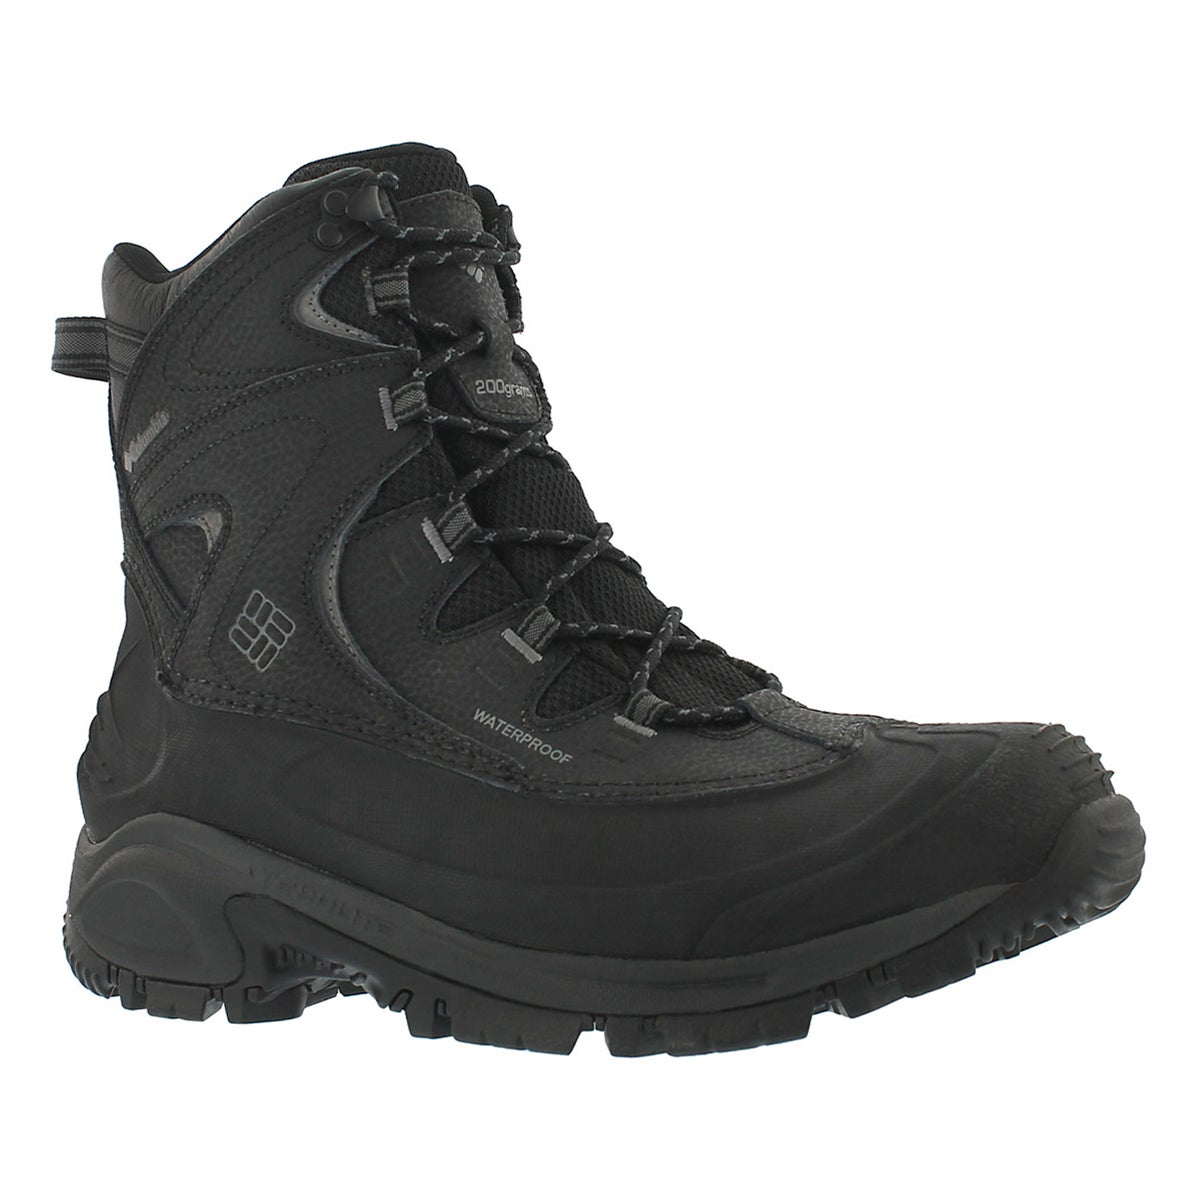 Men's BUGABOOT II black winter boots